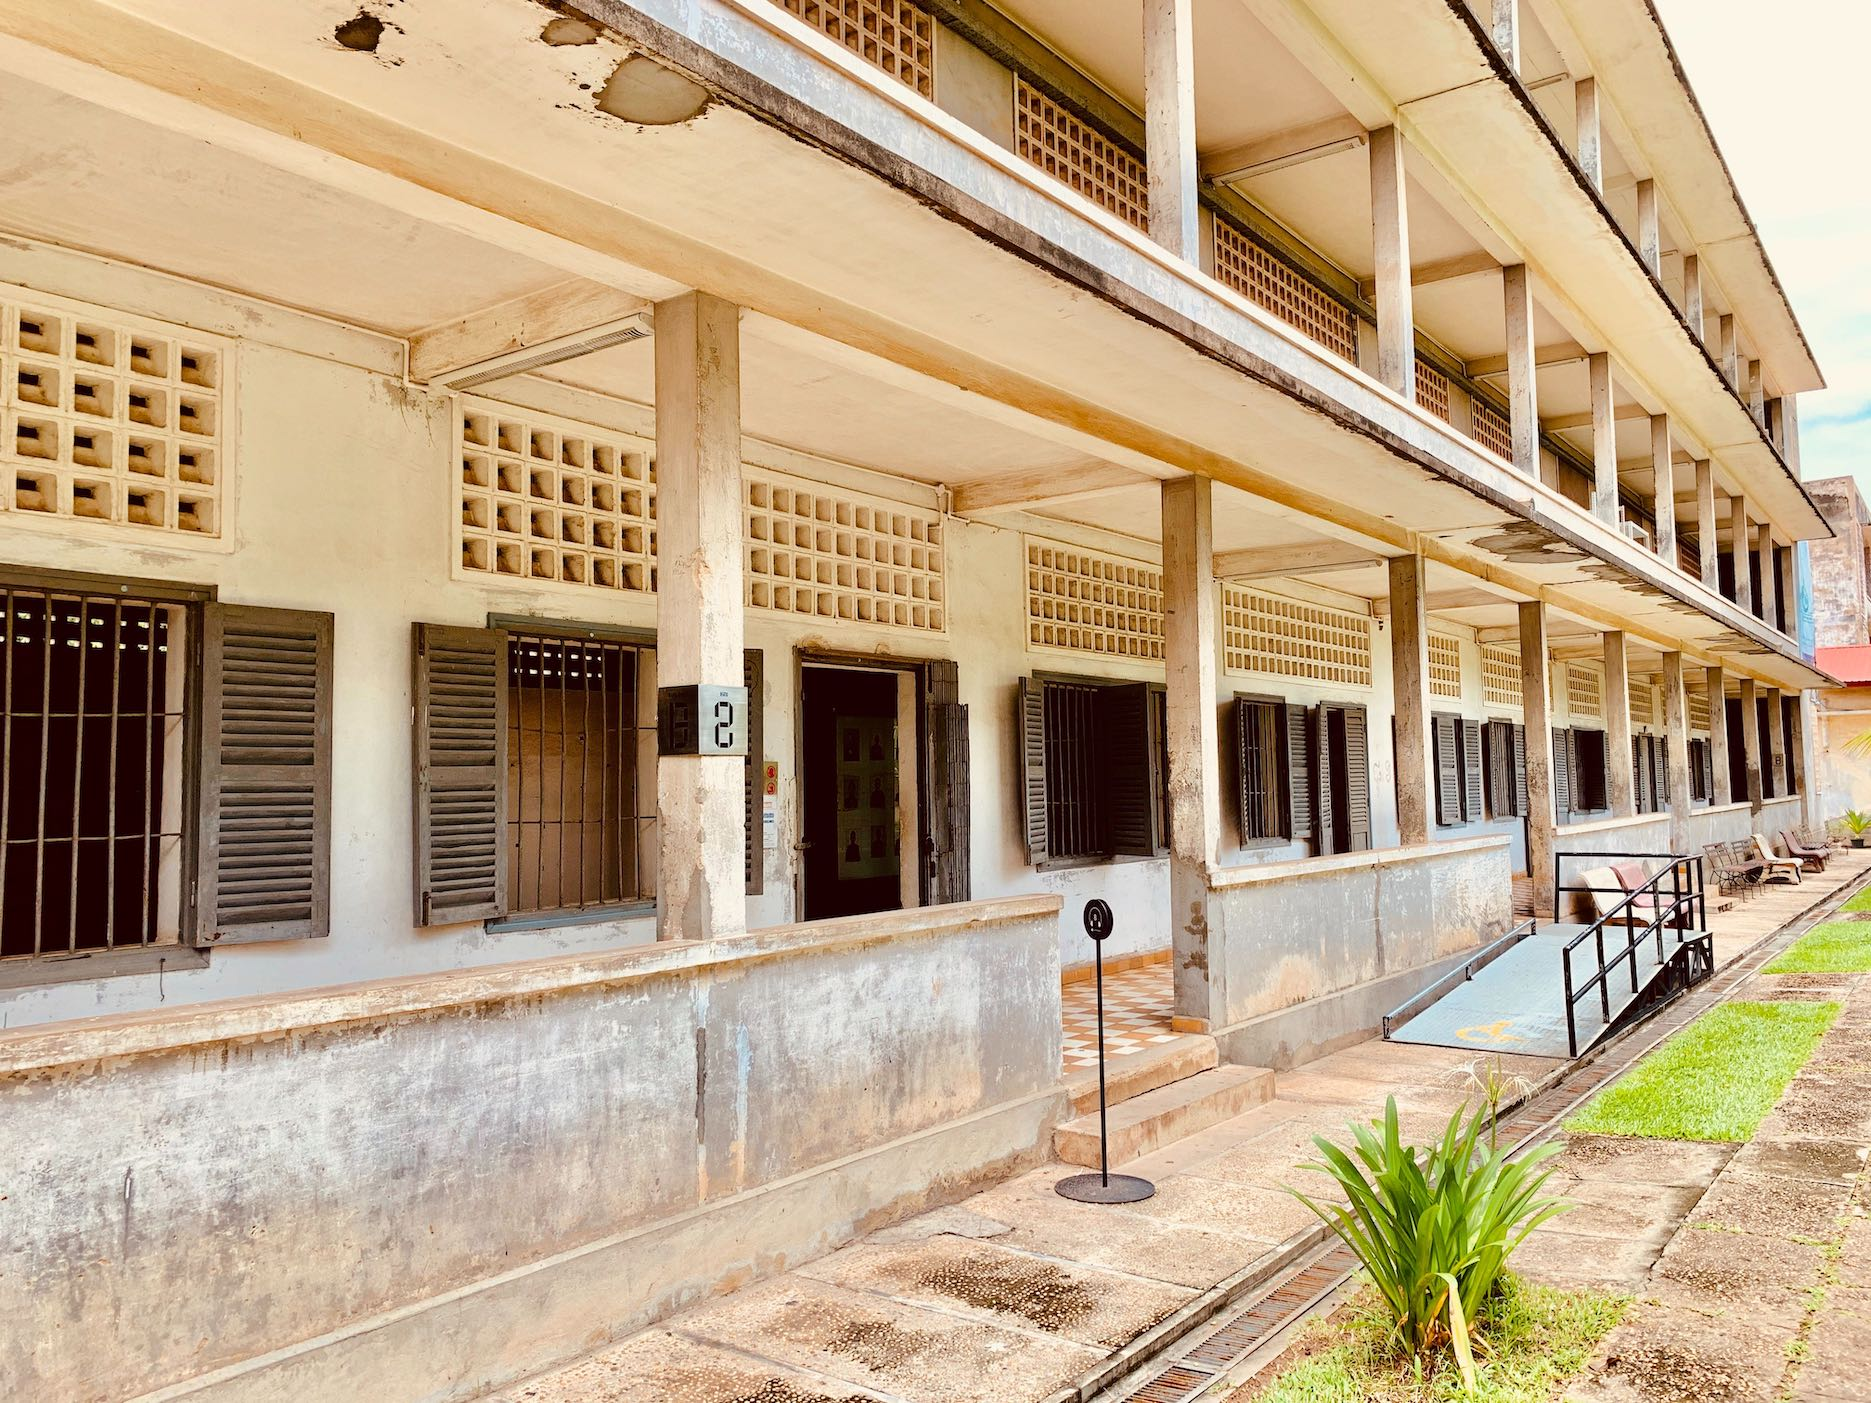 Building B Tuol Sleng Genocide Museum